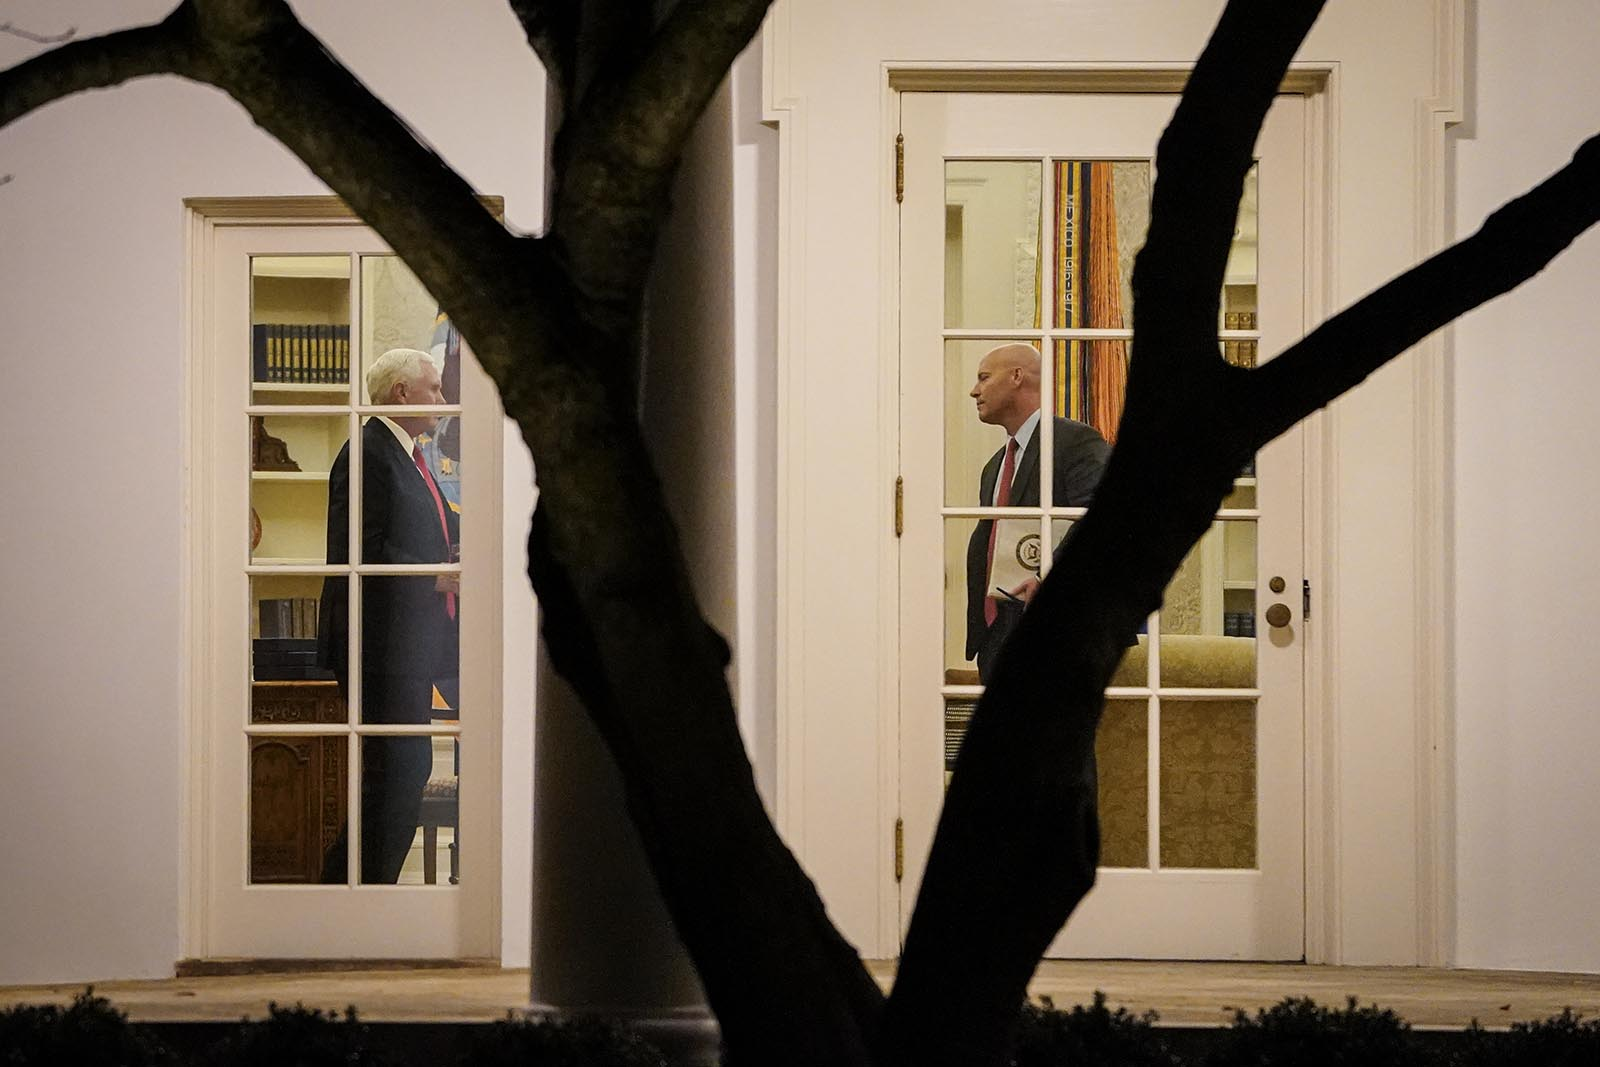 Vice President Mike Pence and his Chief of Staff Marc Short stand in the Oval Office before U.S. President Donald Trump departs the White House on January 4, 2021 in Washington, DC.